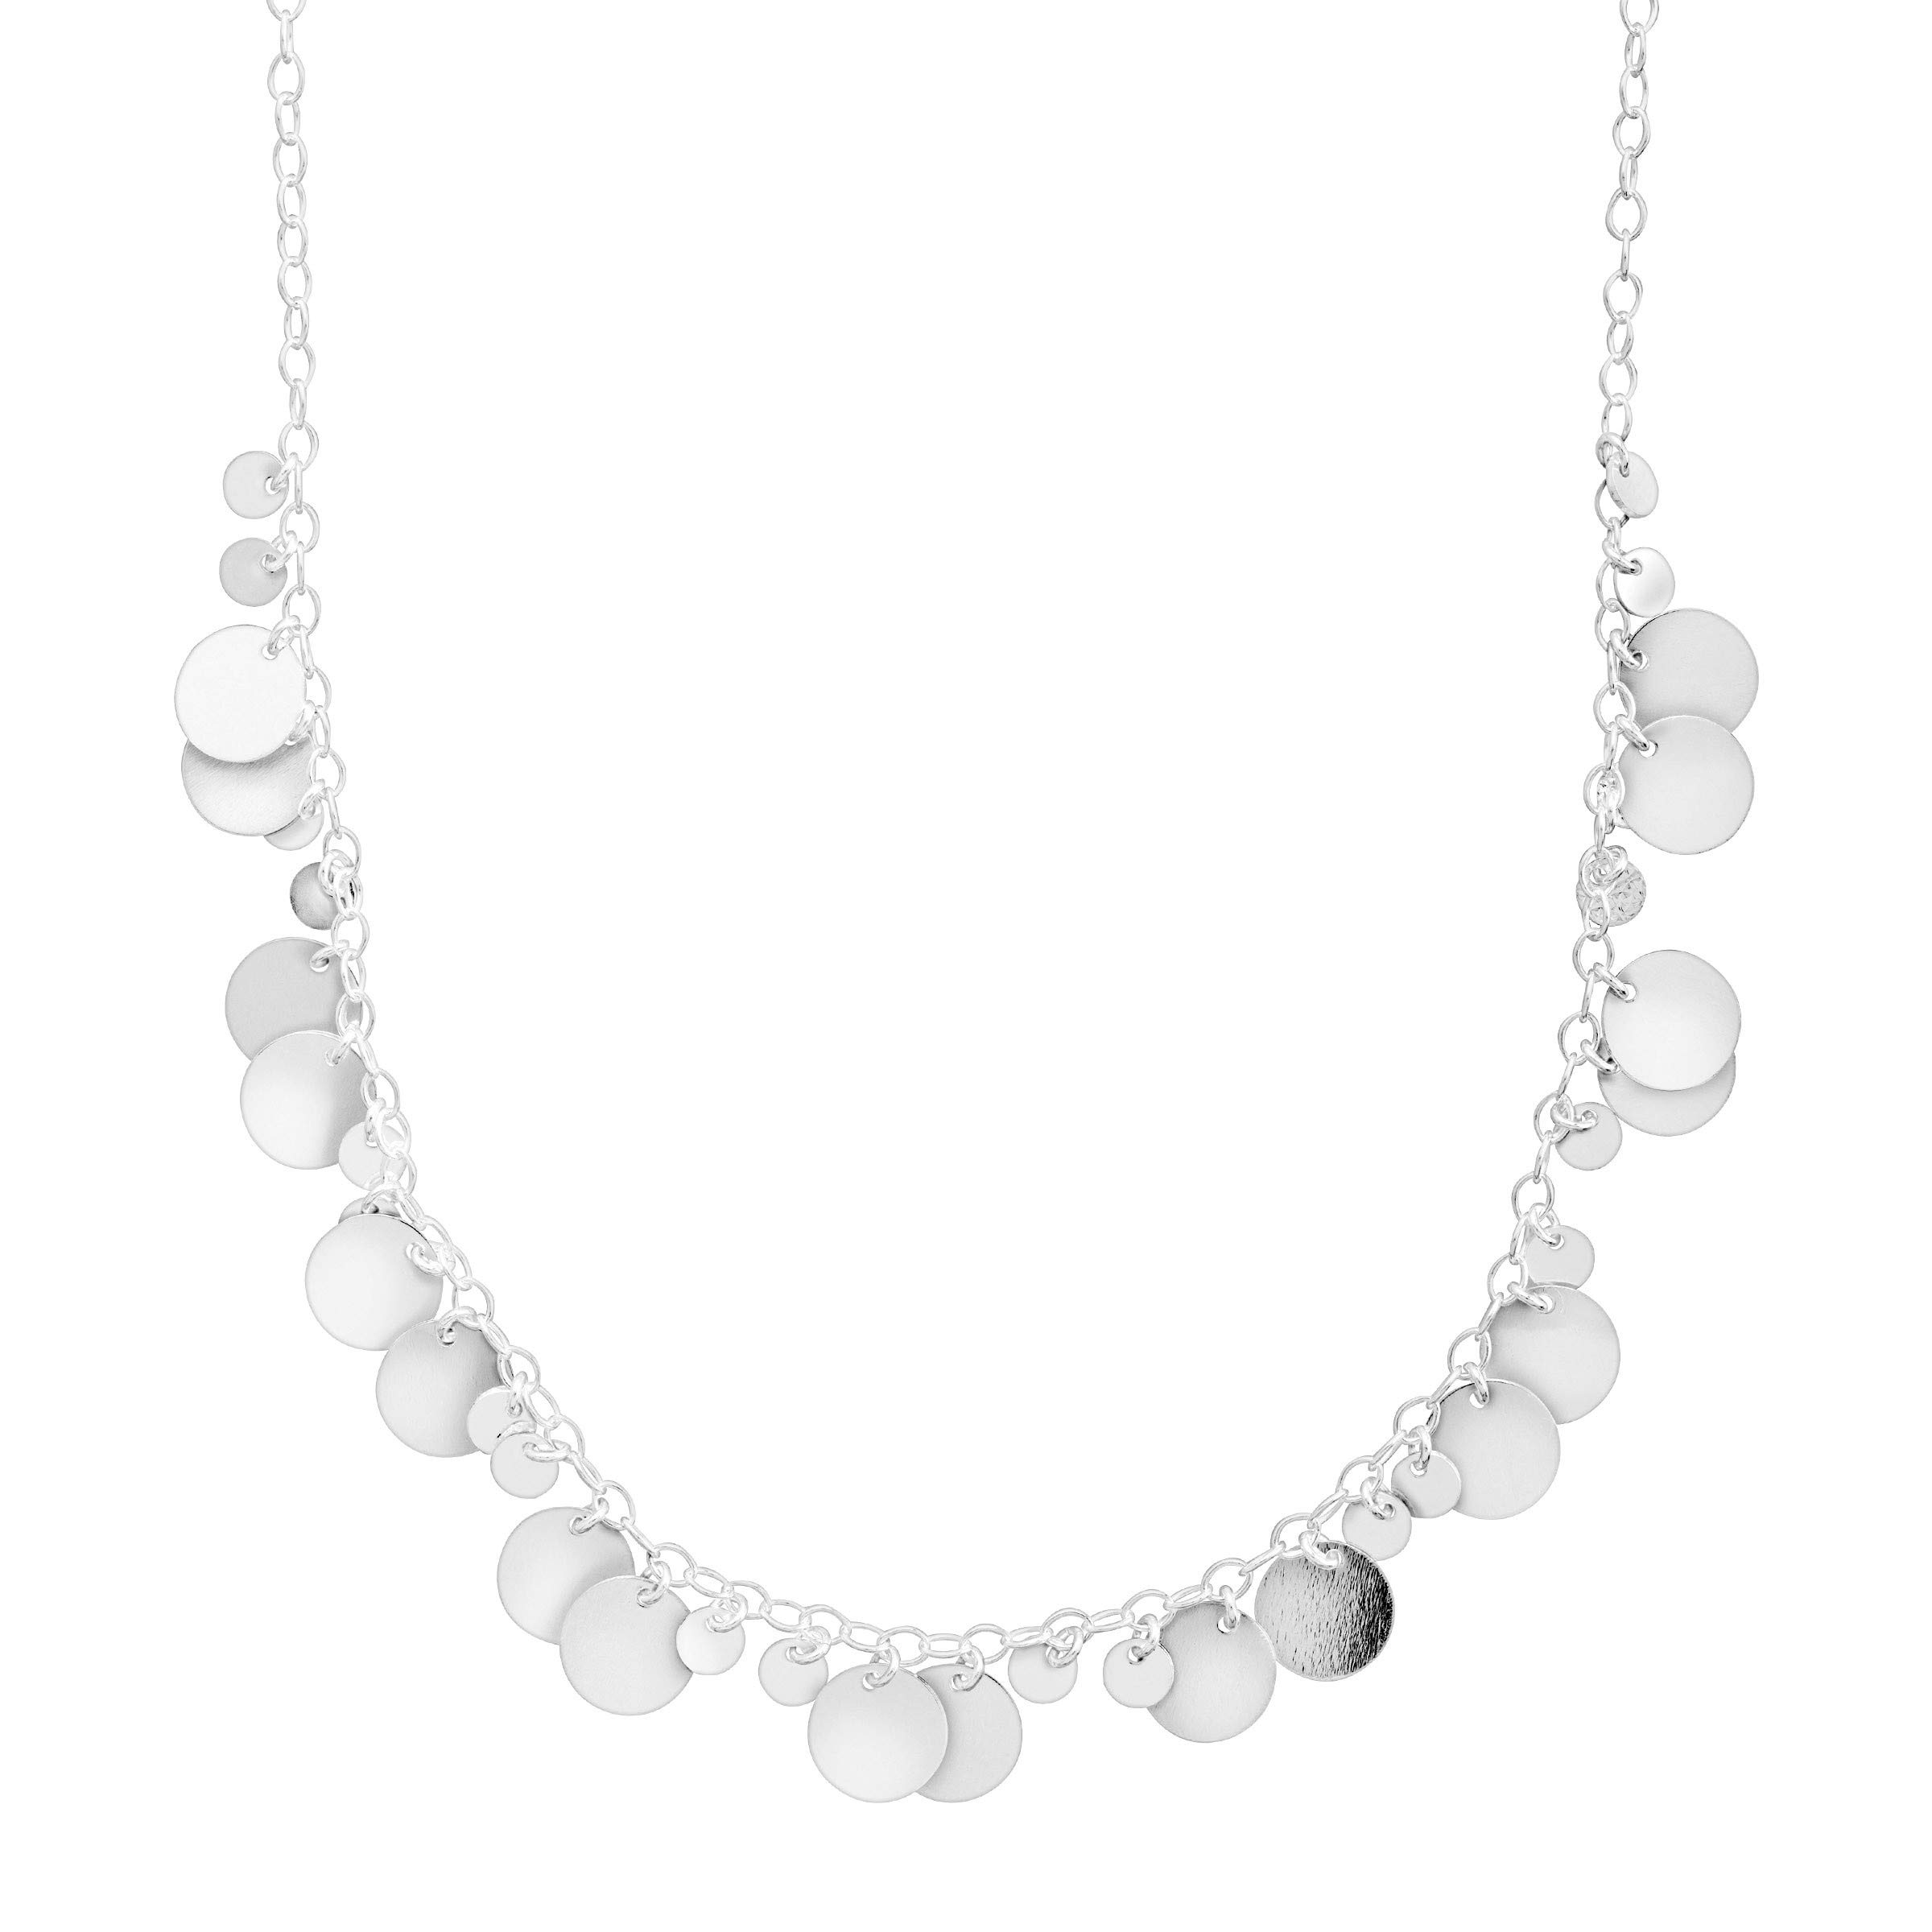 Silpada 'Saguaro' Beaded Disc Necklace in Sterling Silver